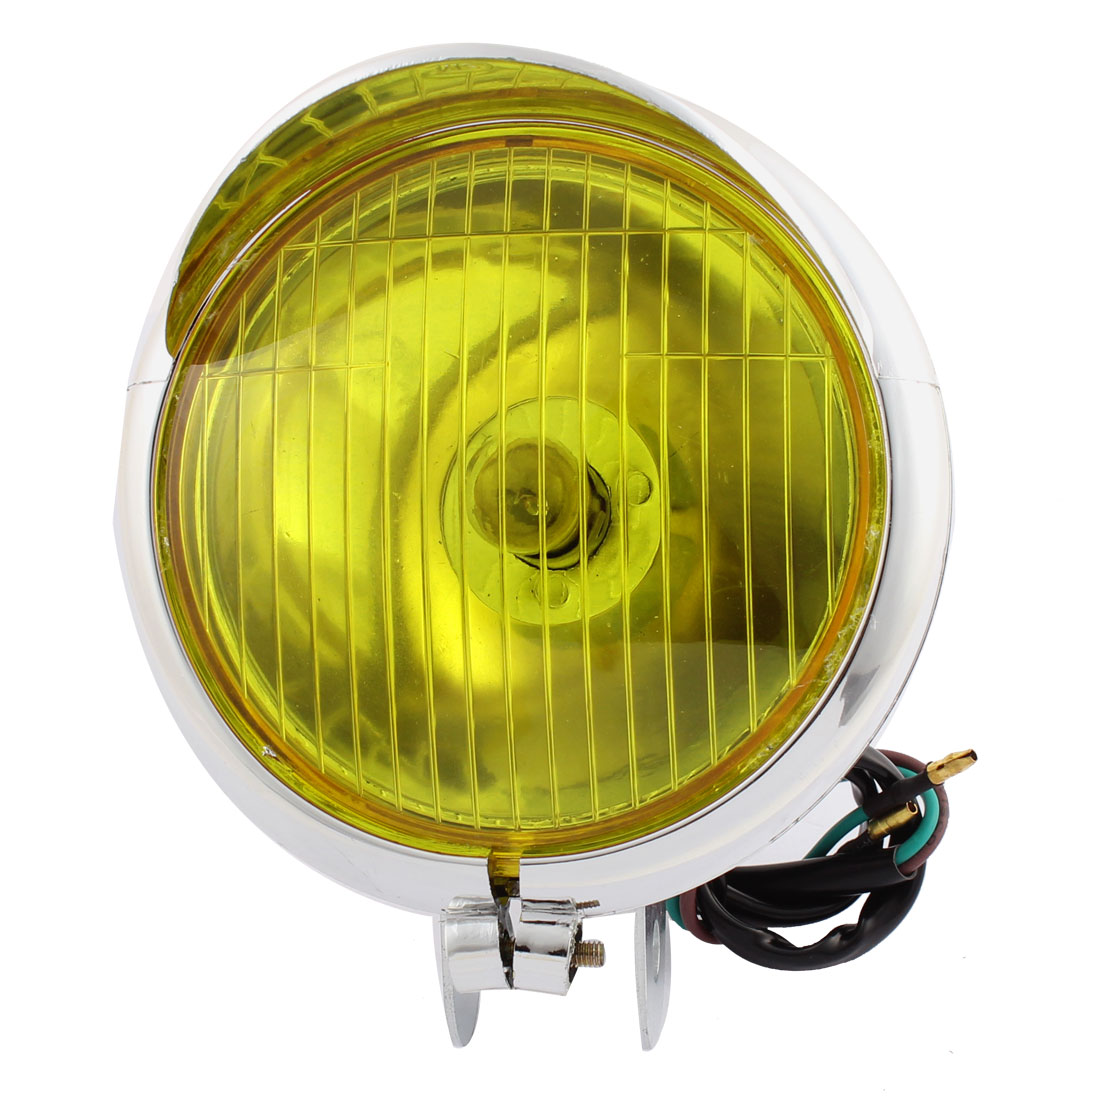 Chrome Plastic Motorcycle Headlight Yellow Headlamp Light Bulb Bucket for GN